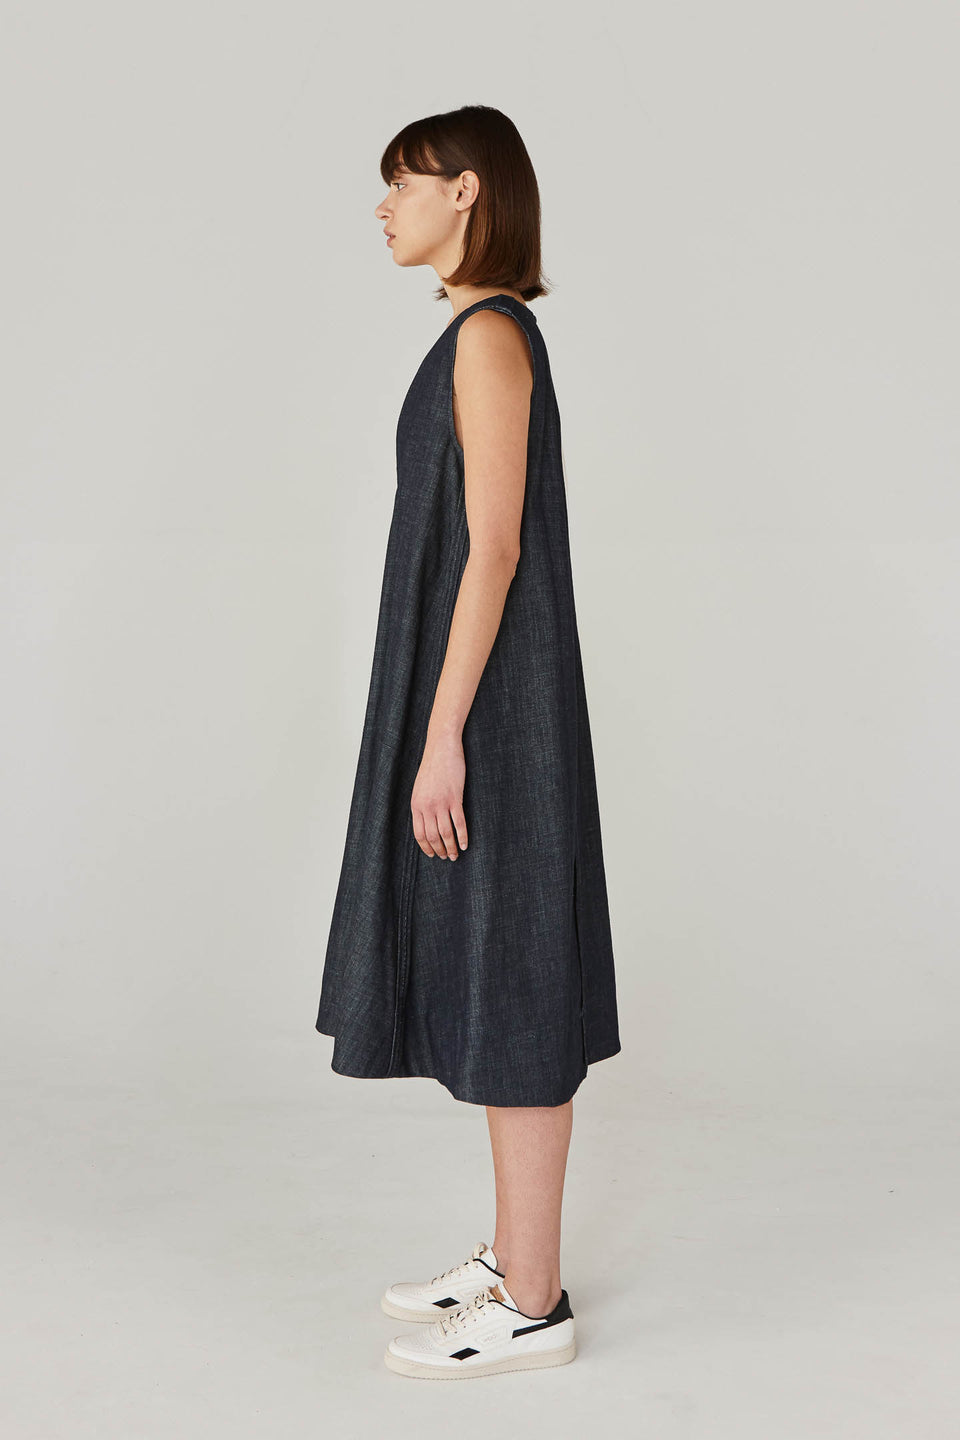 """A"" LINE DENIM DRESS"